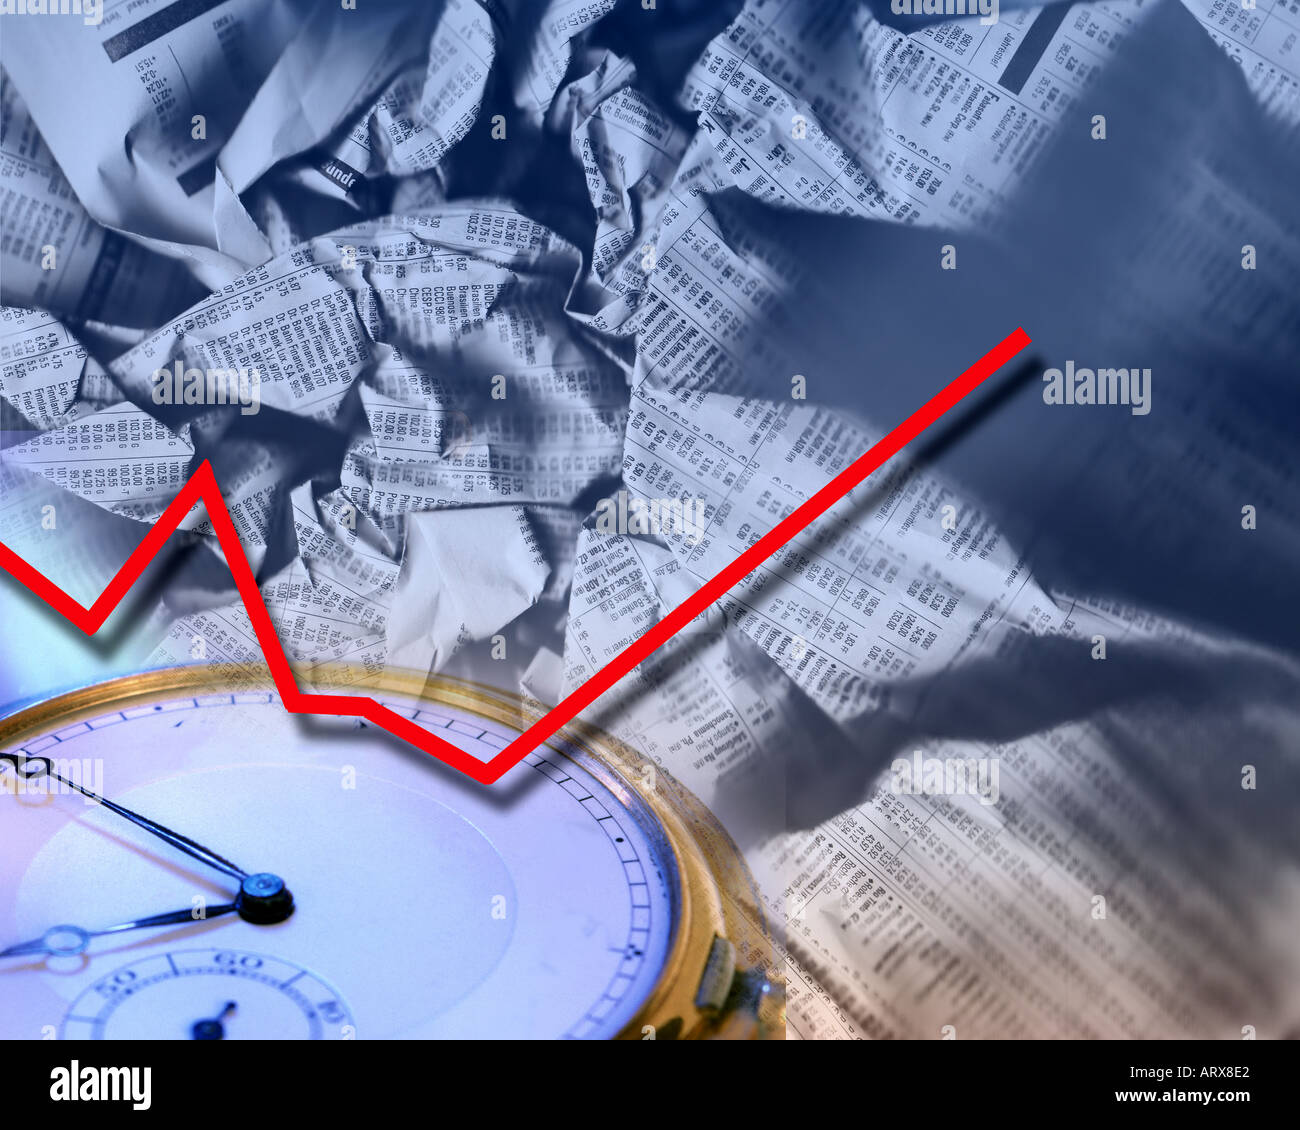 FINANCIAL CONCEPT: Stock market rising - Stock Image